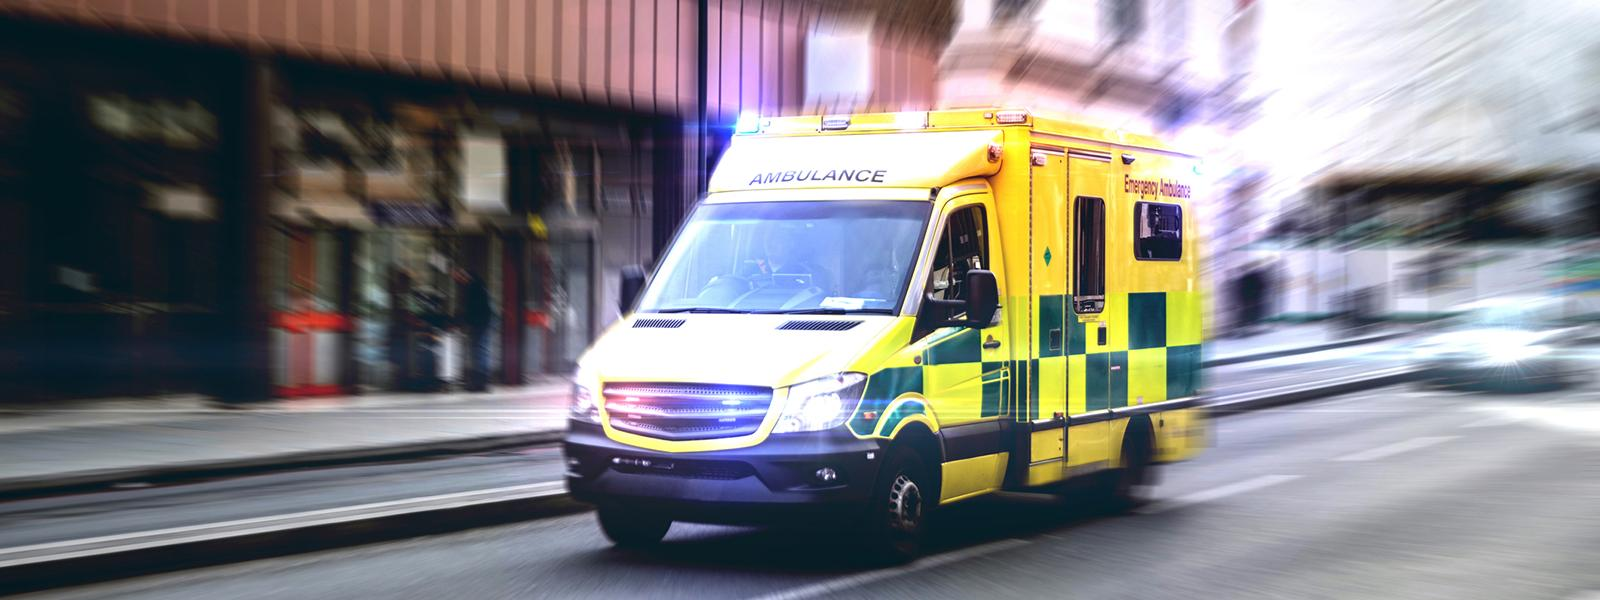 Ambulance on the streets of London